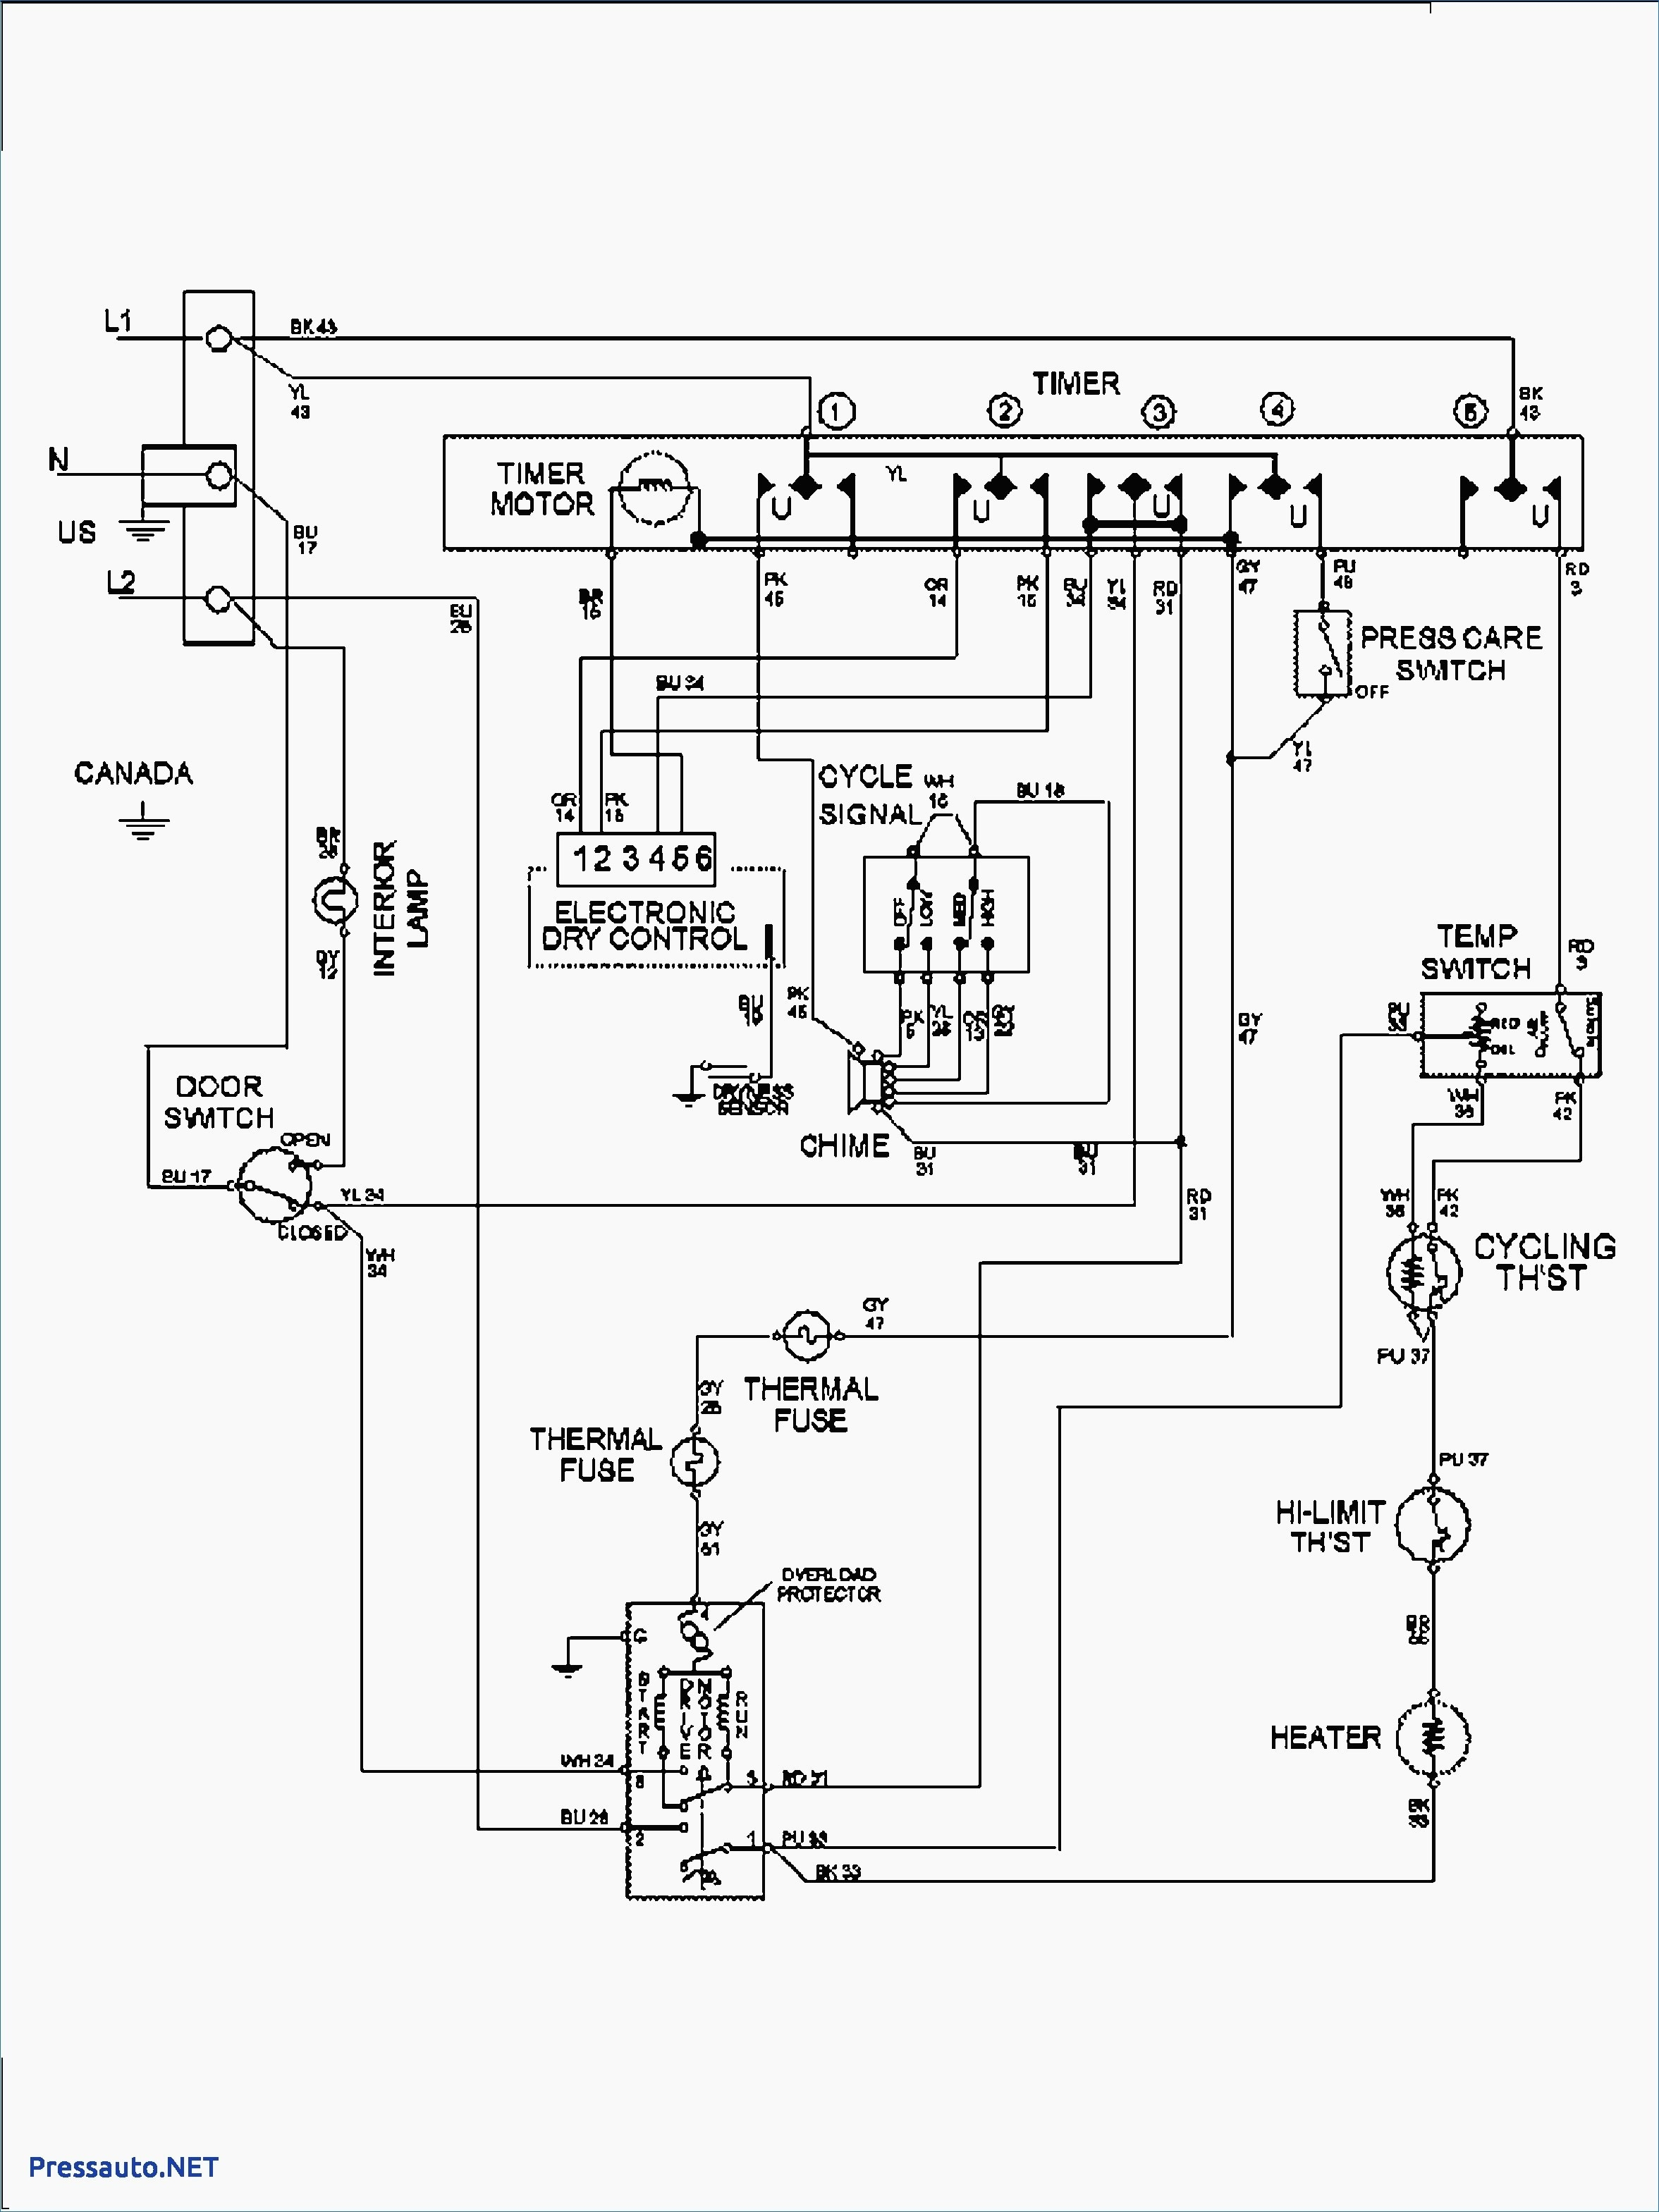 whirlpool dryer wiring diagram lhi5801w0